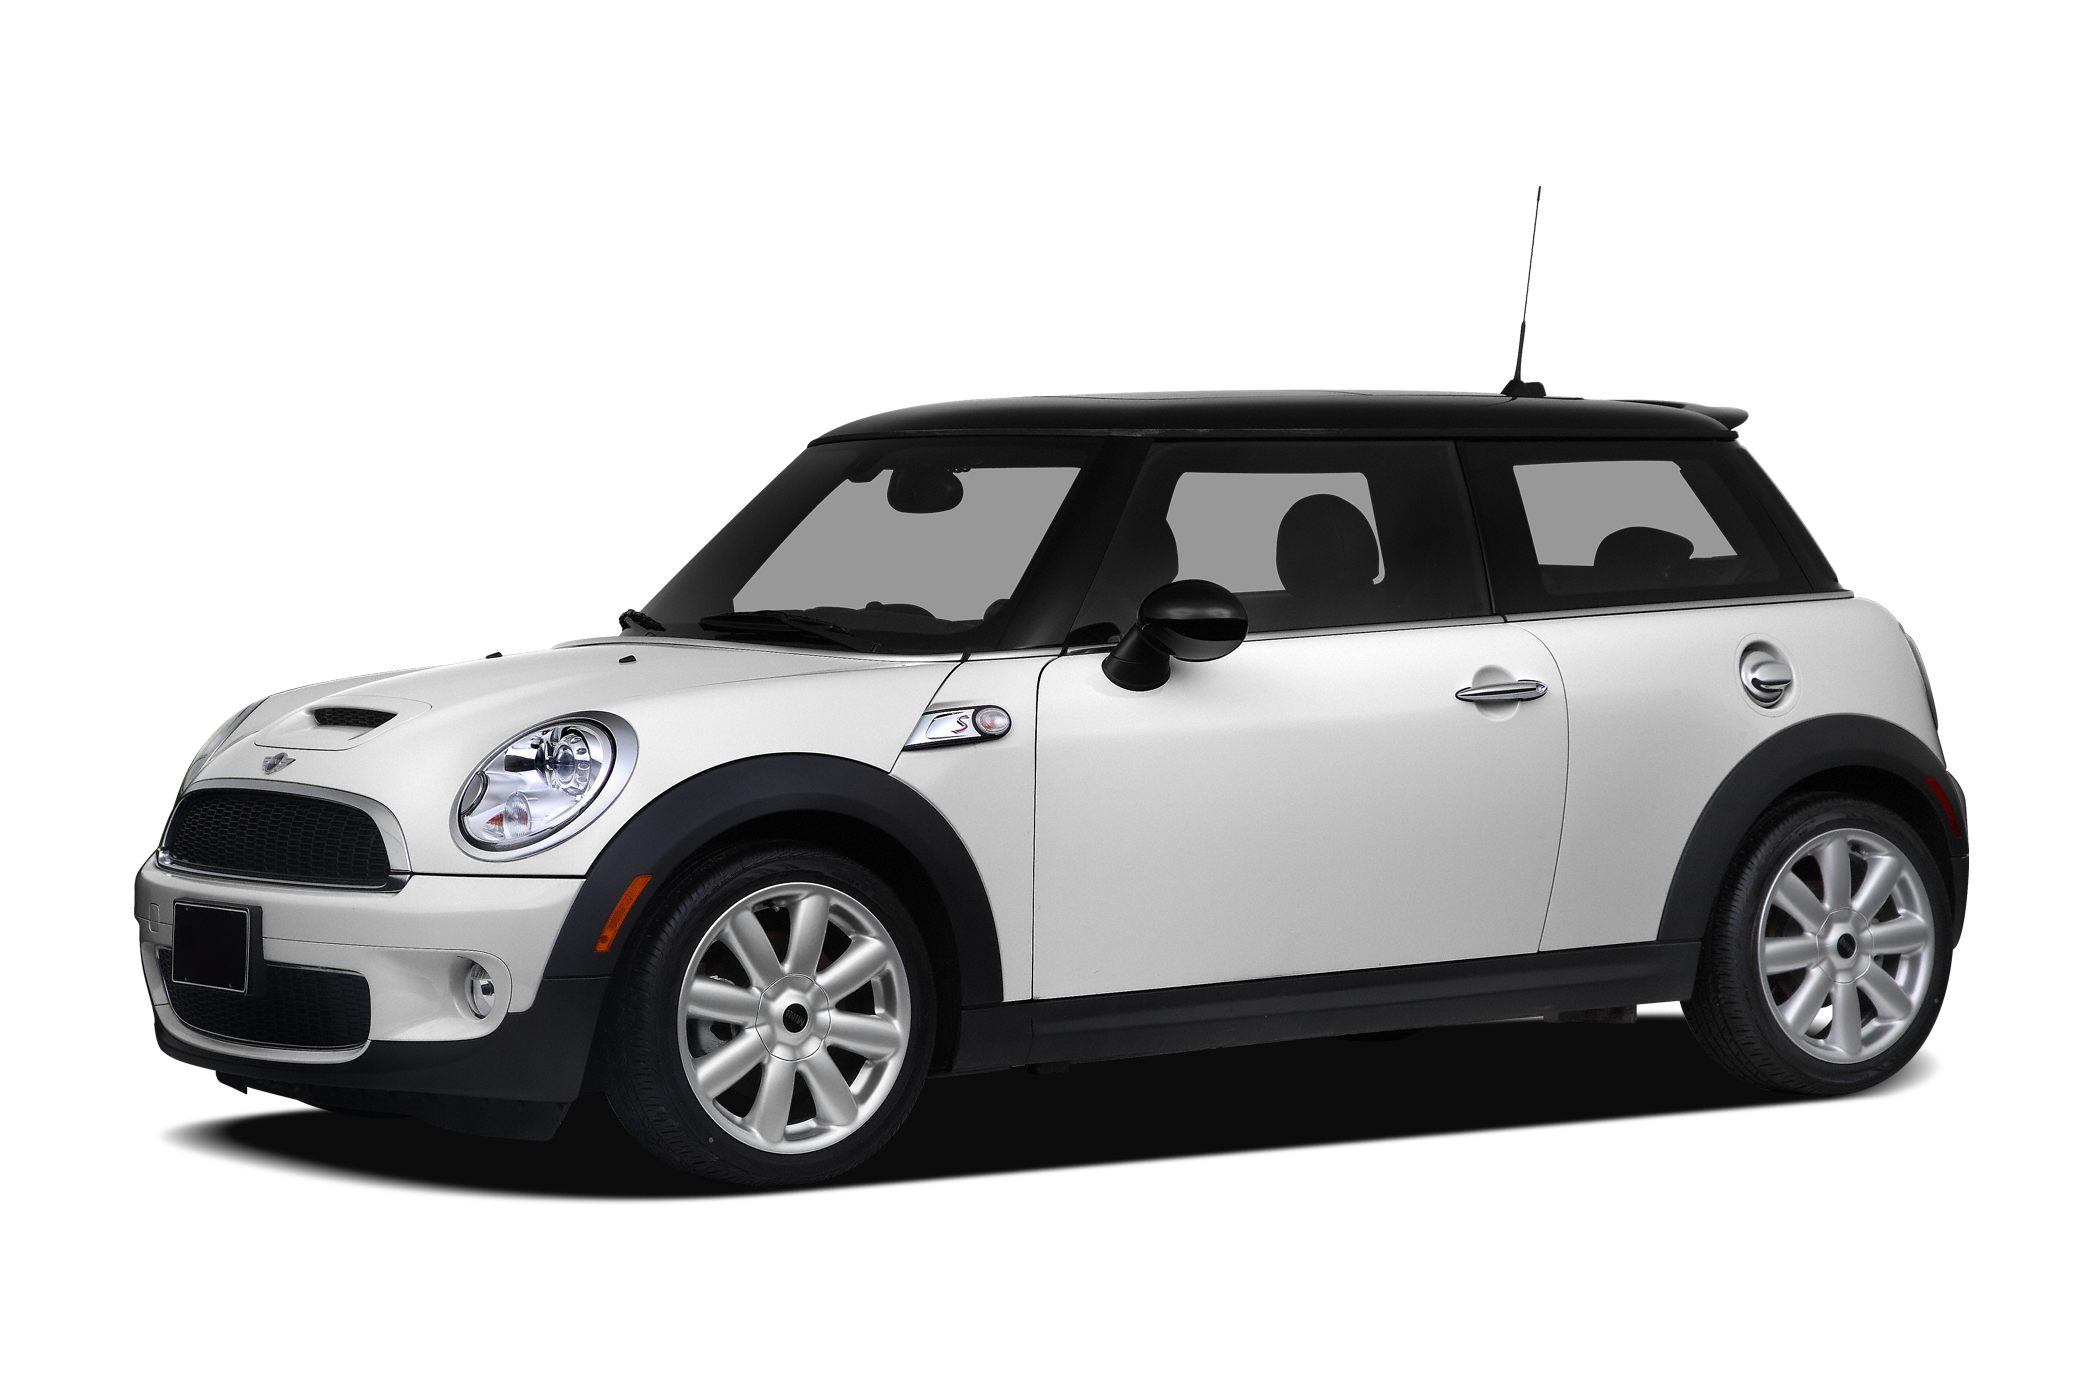 2007 MINI Cooper S Pricing And Specs